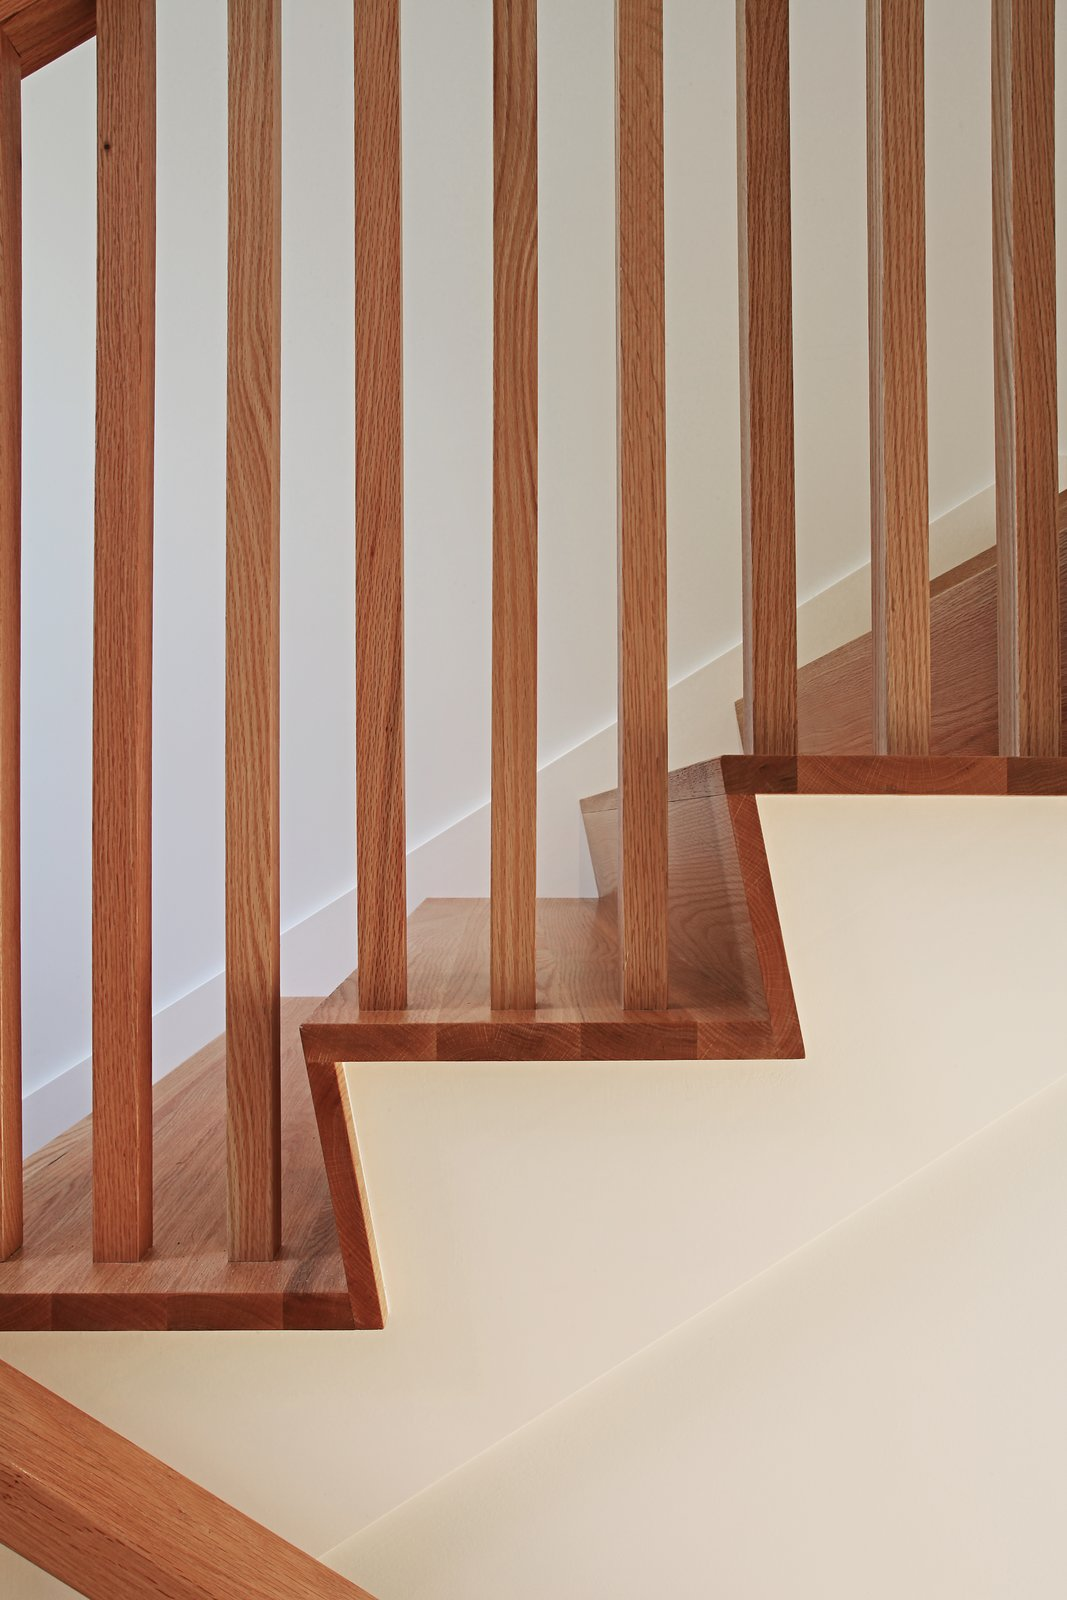 Continuous wood riser/ tread detail  Higgins Lake House by Jeff Jordan Architects